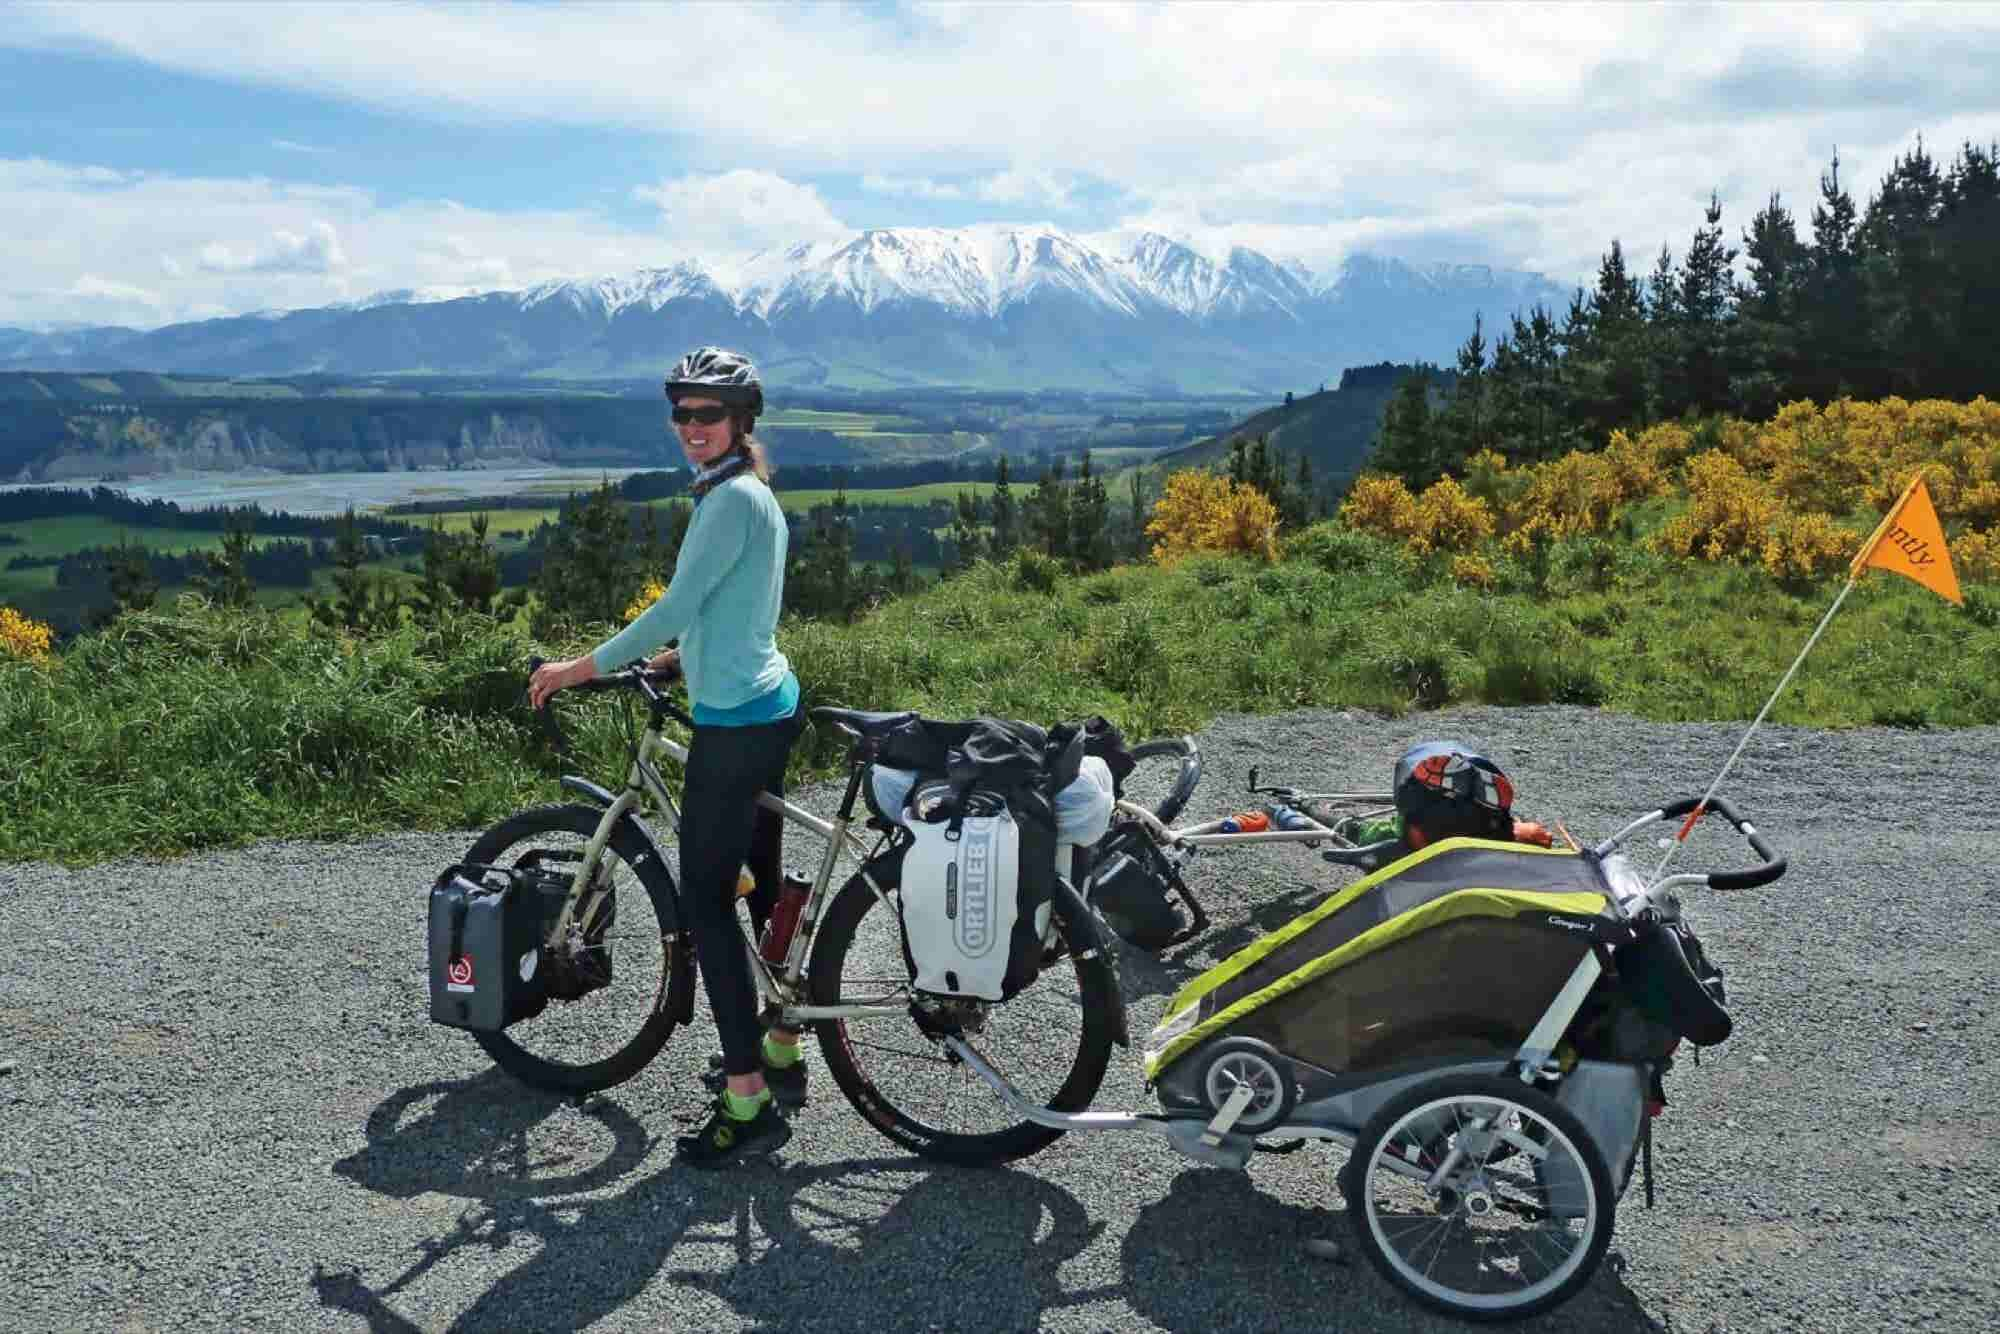 How a Bike Trip Across New Zealand Helped This Entrepreneur Realize Her Dream